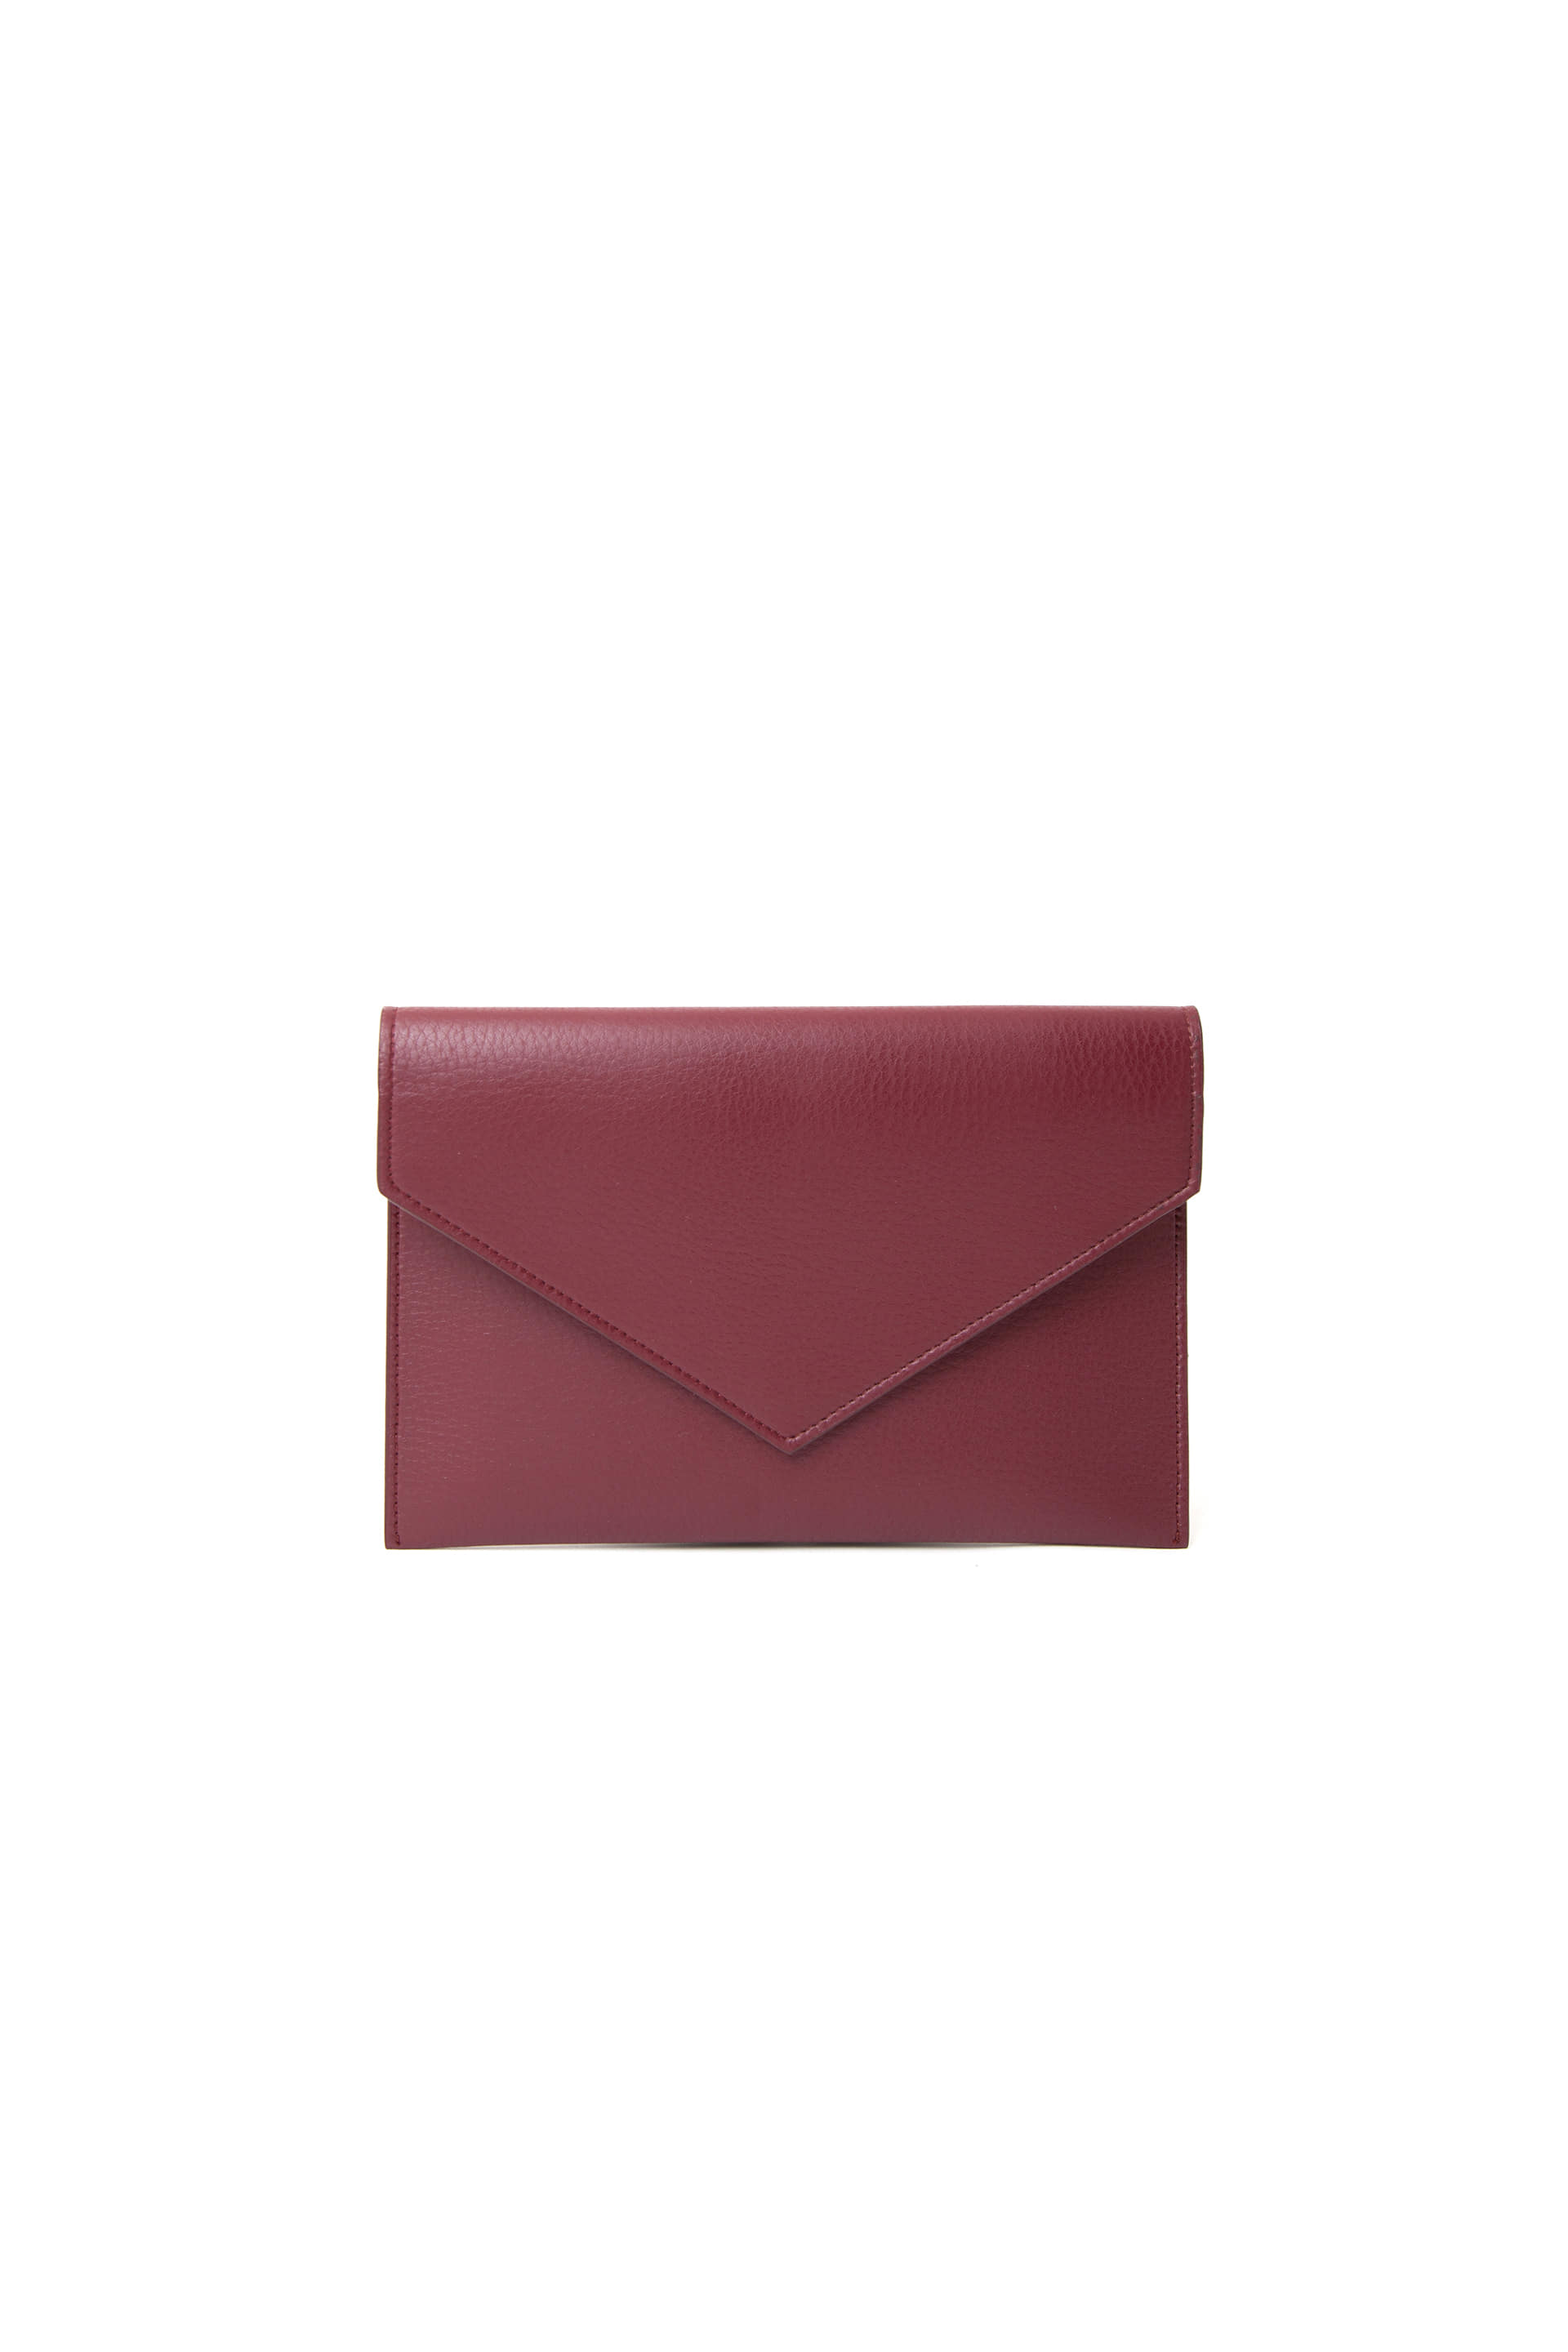 COSMETIC CLUTCH 17 Vino Wine